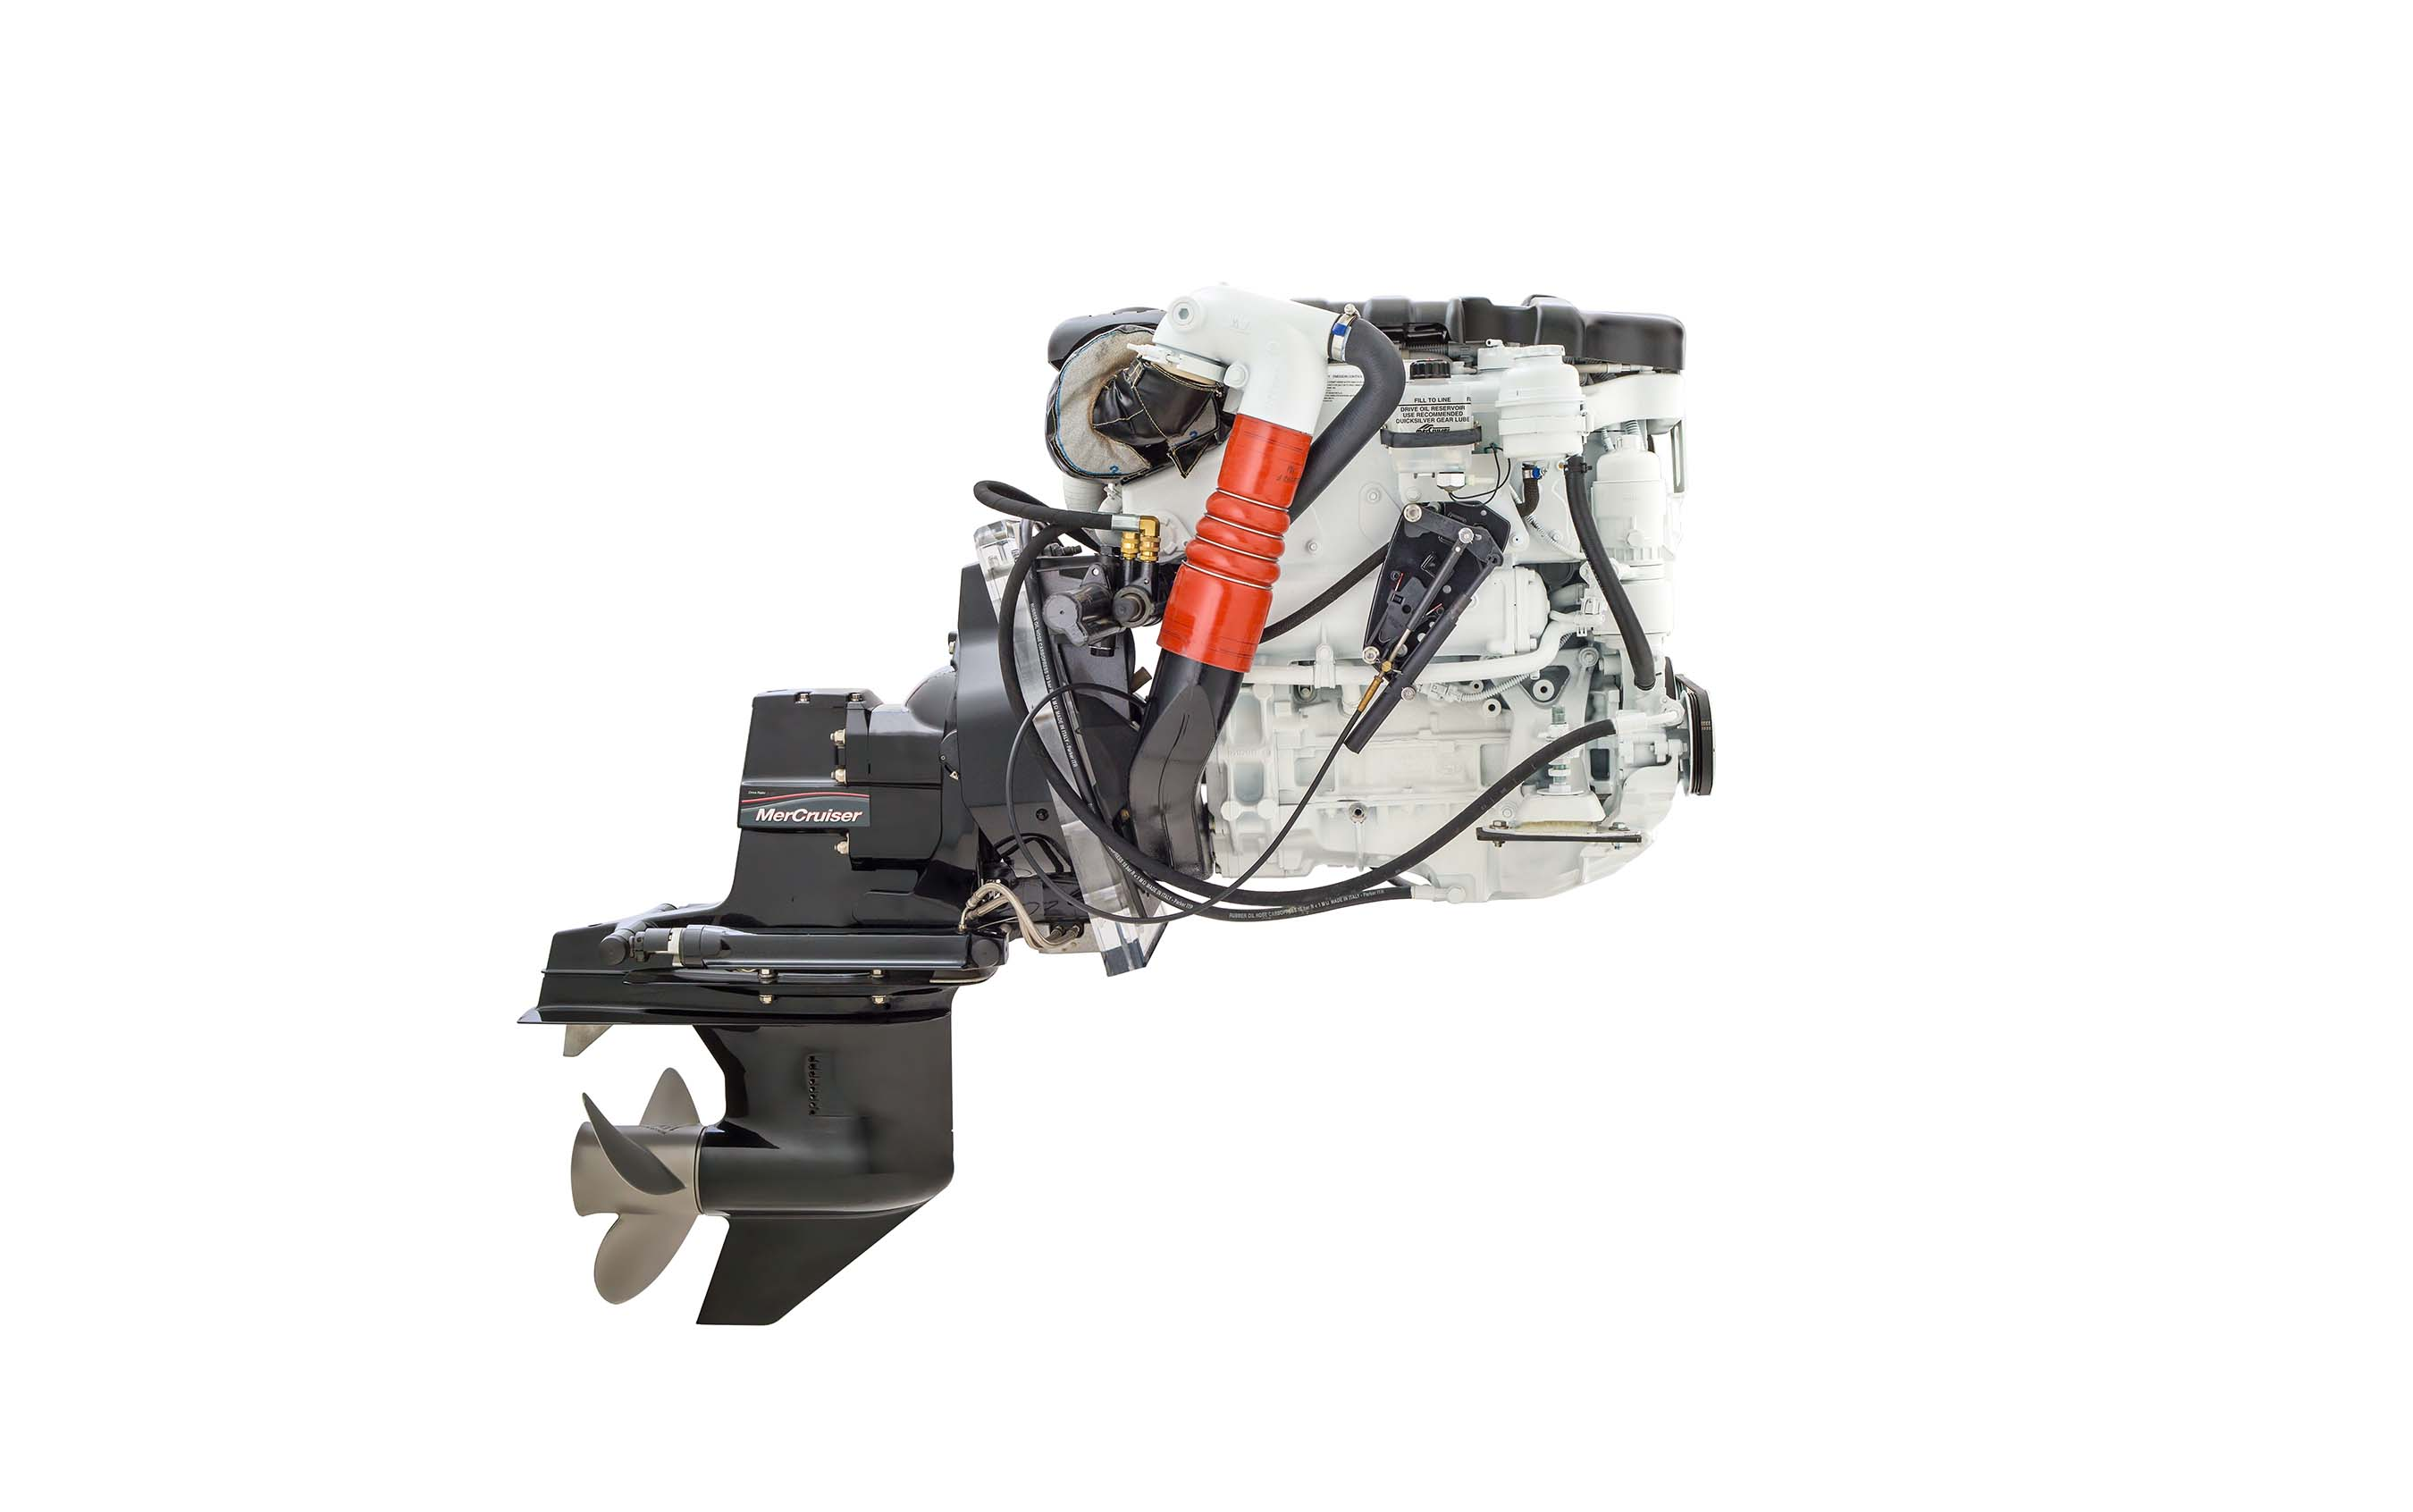 Graduates can achieve a provisional factory certification for Mercury Marine outboard motors and will have partially completed the training requirements for certification for MerCruiser sterndrives.